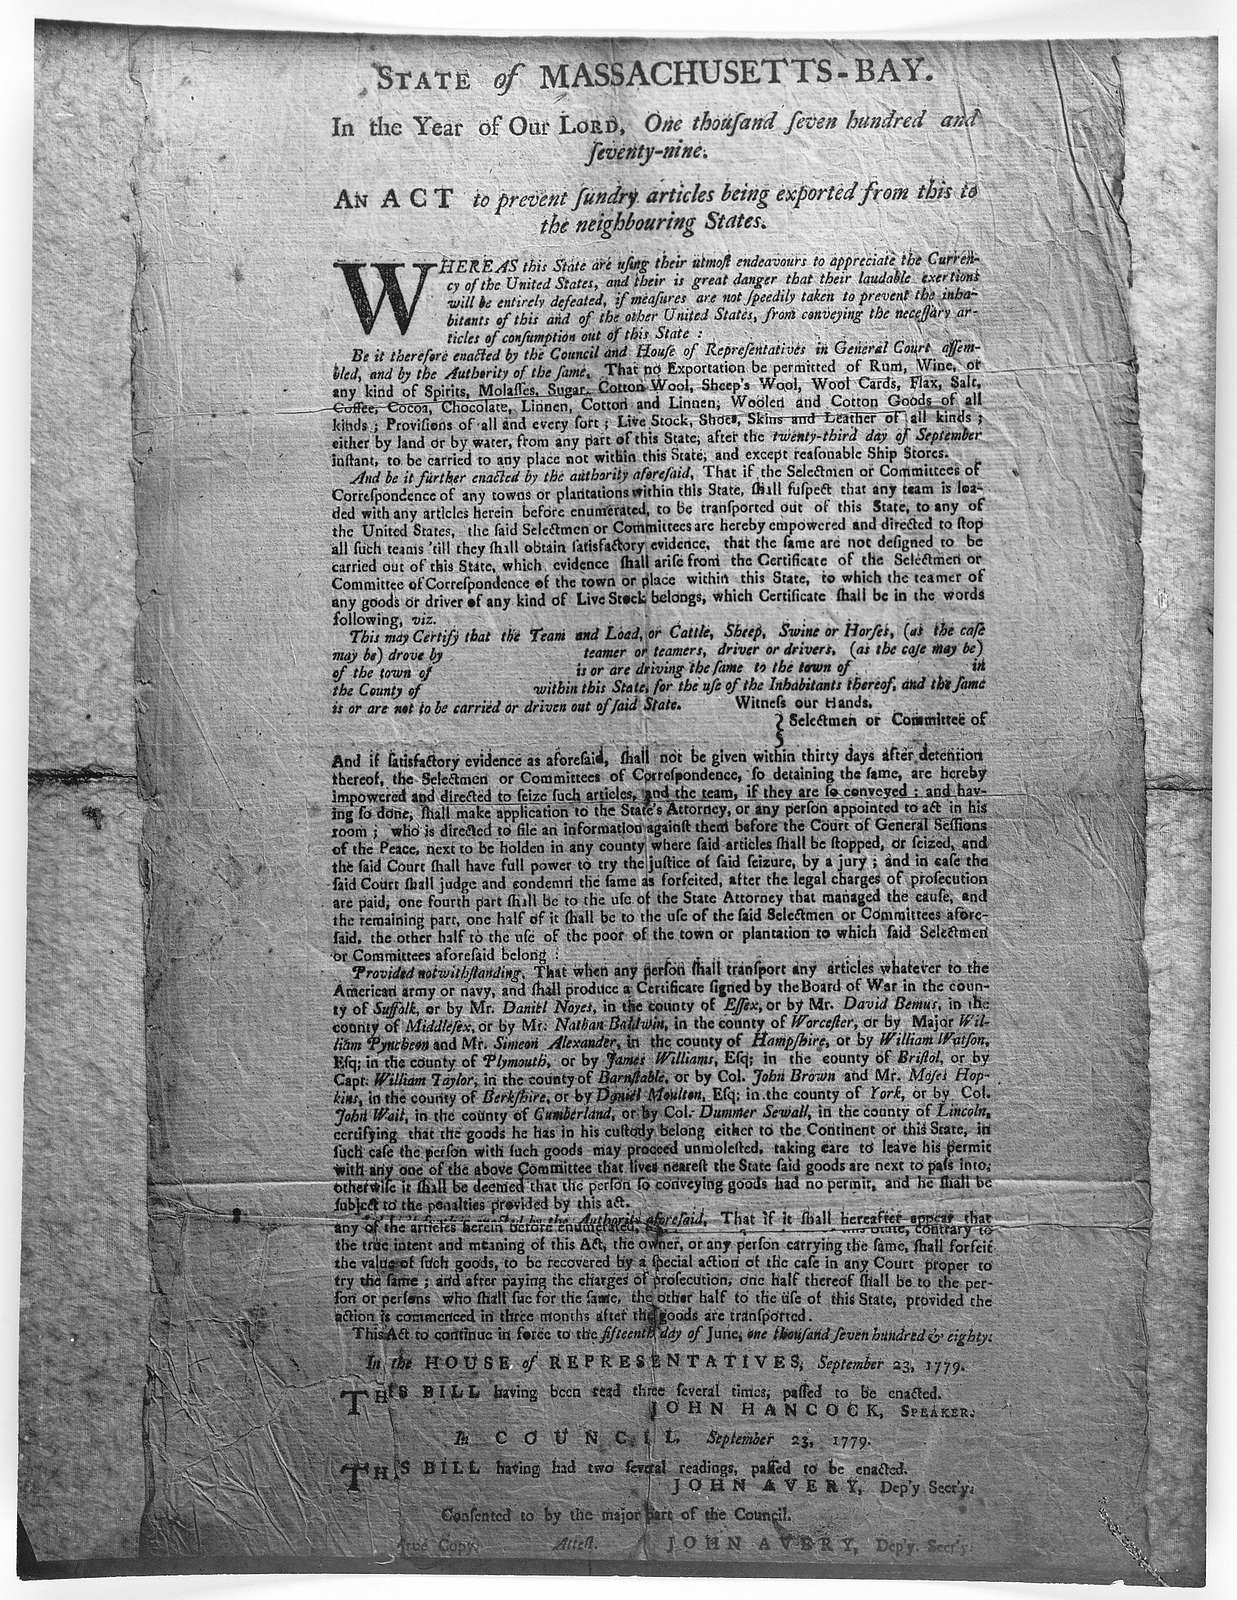 State of Massachusetts-Bay. In the year of our Lord, one thousand seven hundred and seventy-nine. An act to prevent sundry articles being exported from this to the neighbouring states ... [Boston, 1779].